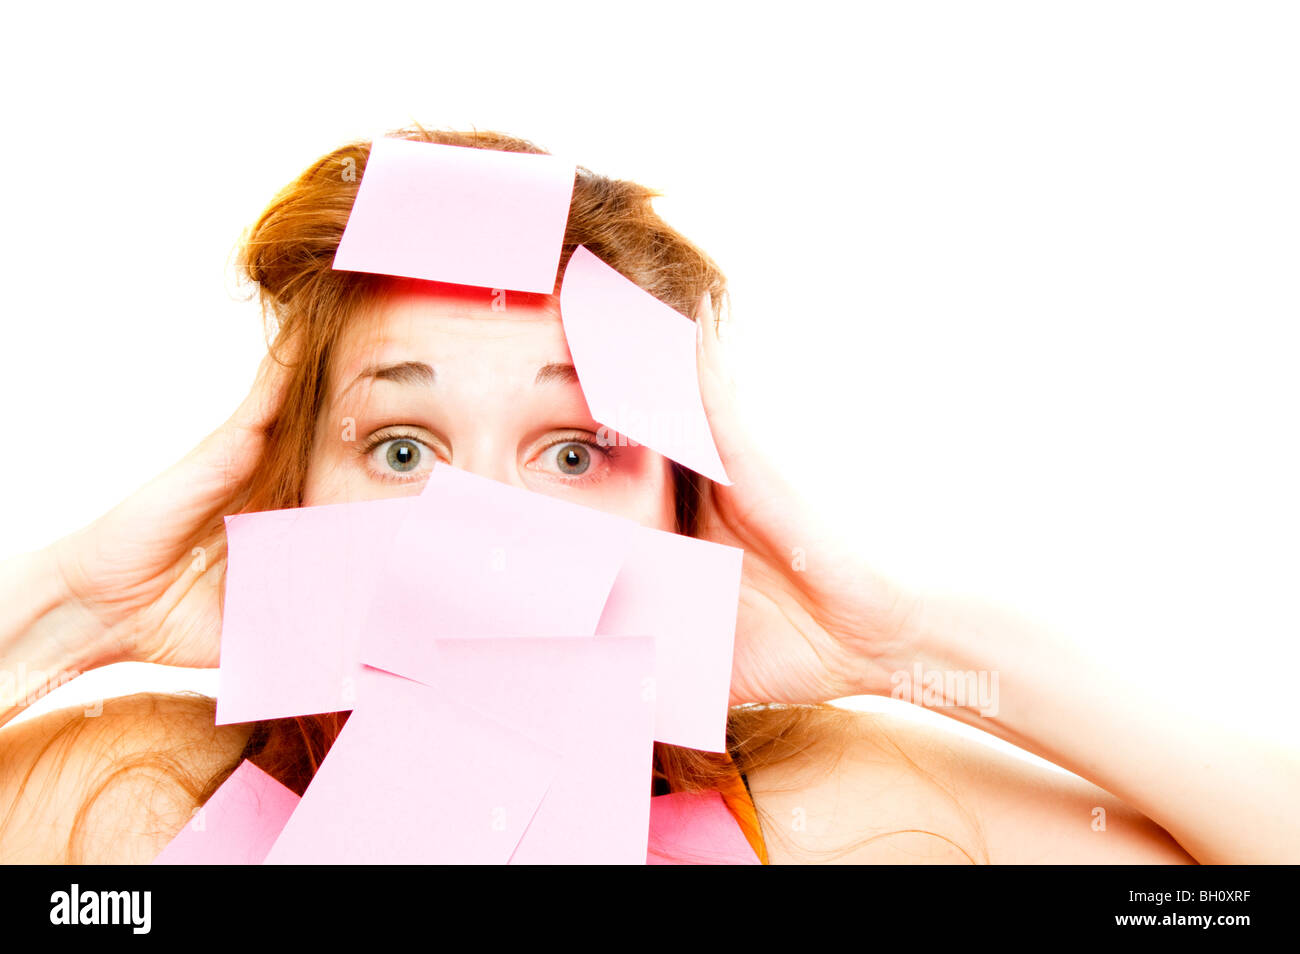 woman pasted over by a paper Stock Photo